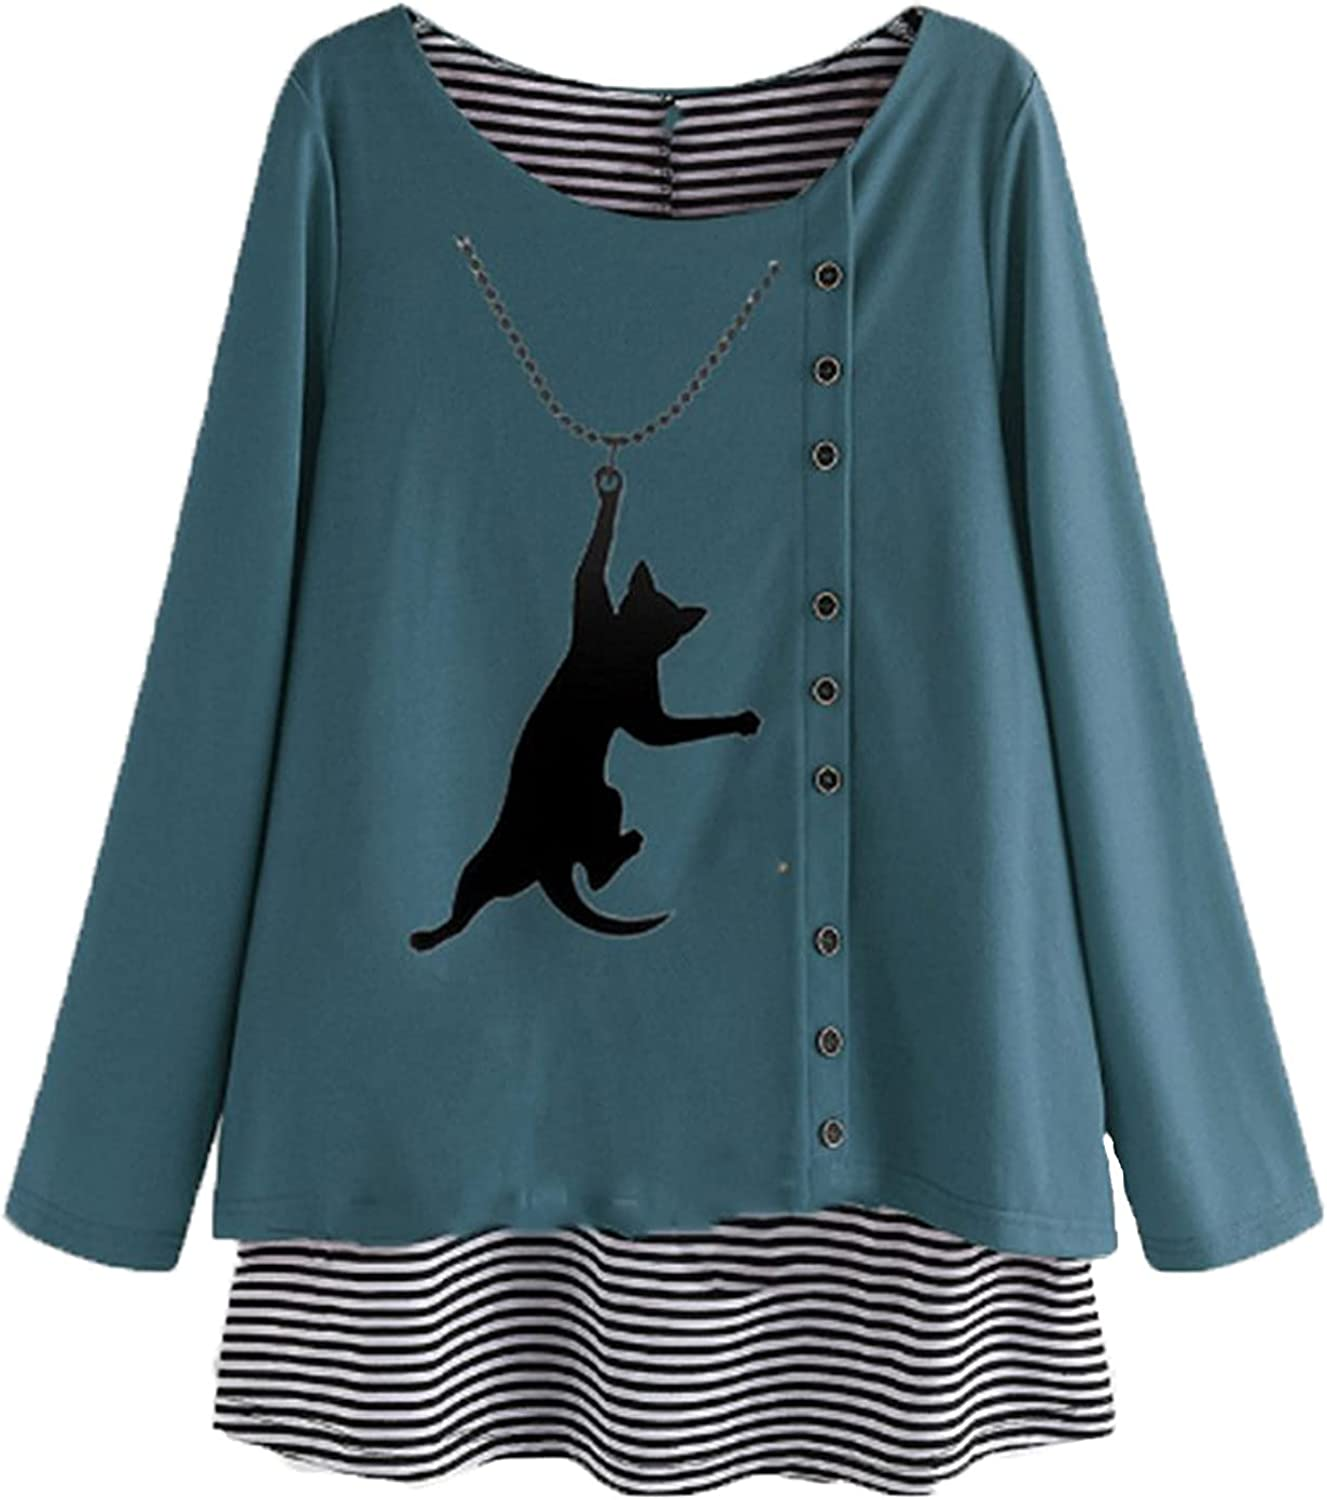 Plus Size Tops for Women Cute Cartoon Cat Graphic Blouse Tees Long Sleeves T Shirt Stripe Patchwork Button Pullover